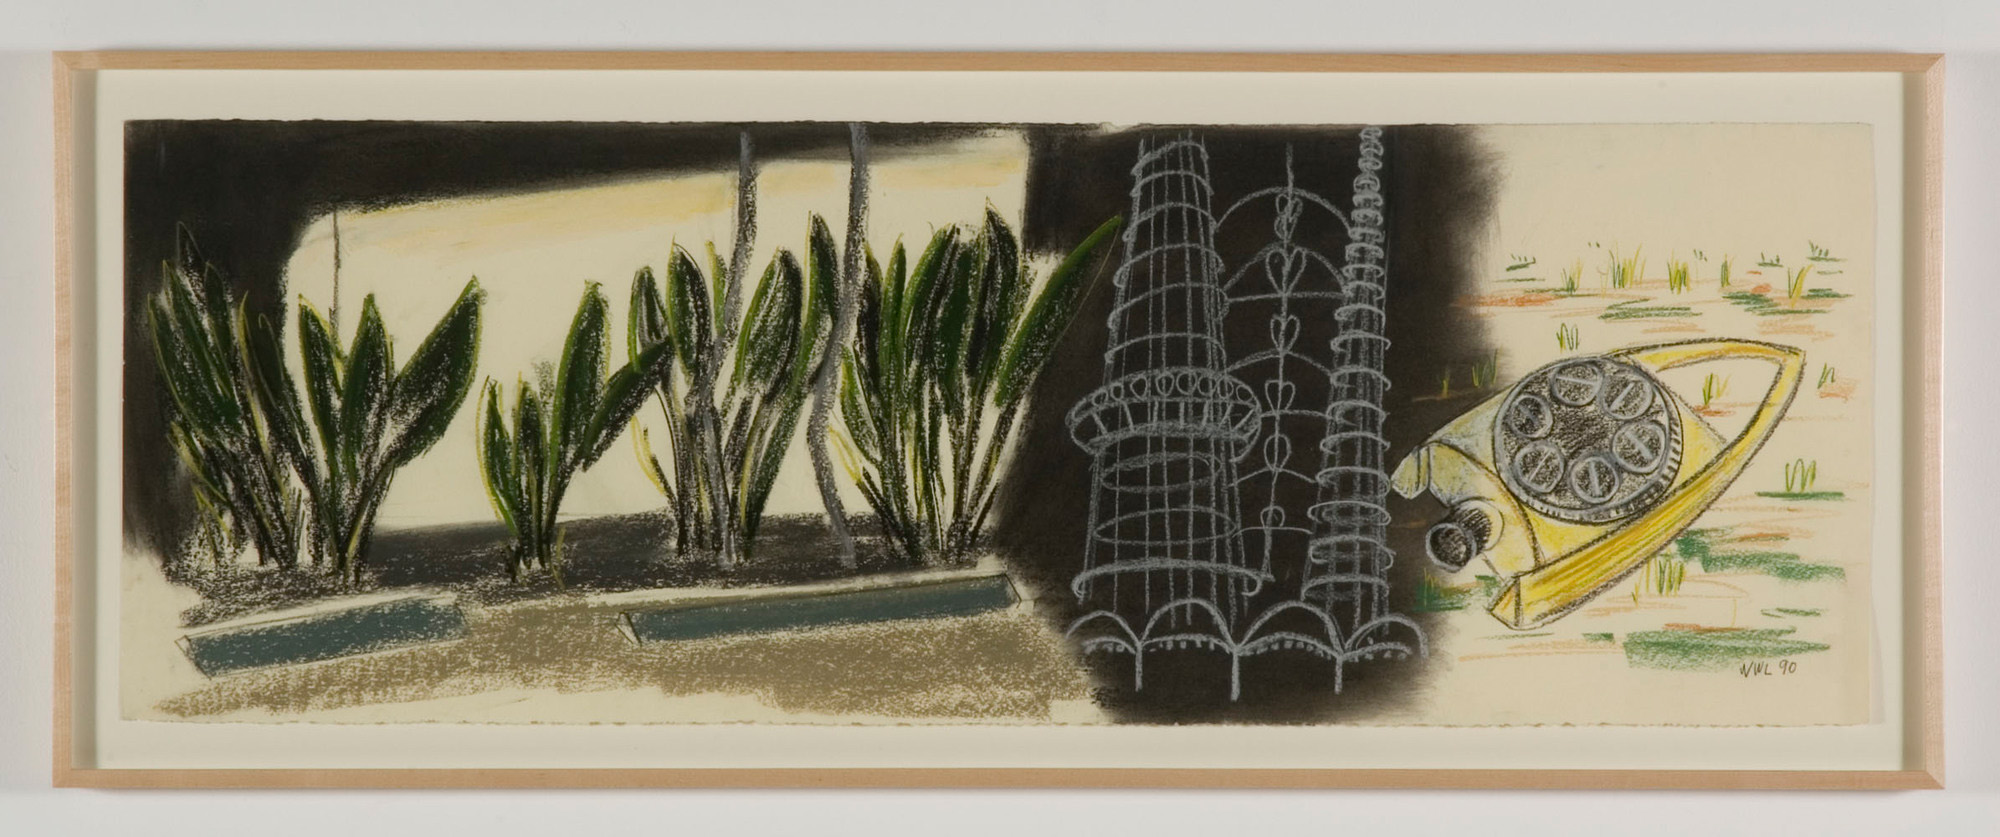 William Leavitt, <em>Rodia Tower with Lawn Sprinkler</em>, 1990. Pastel on paper, 15 x 43 in. Courtesy Margo Leavin Gallery, Los Angeles.